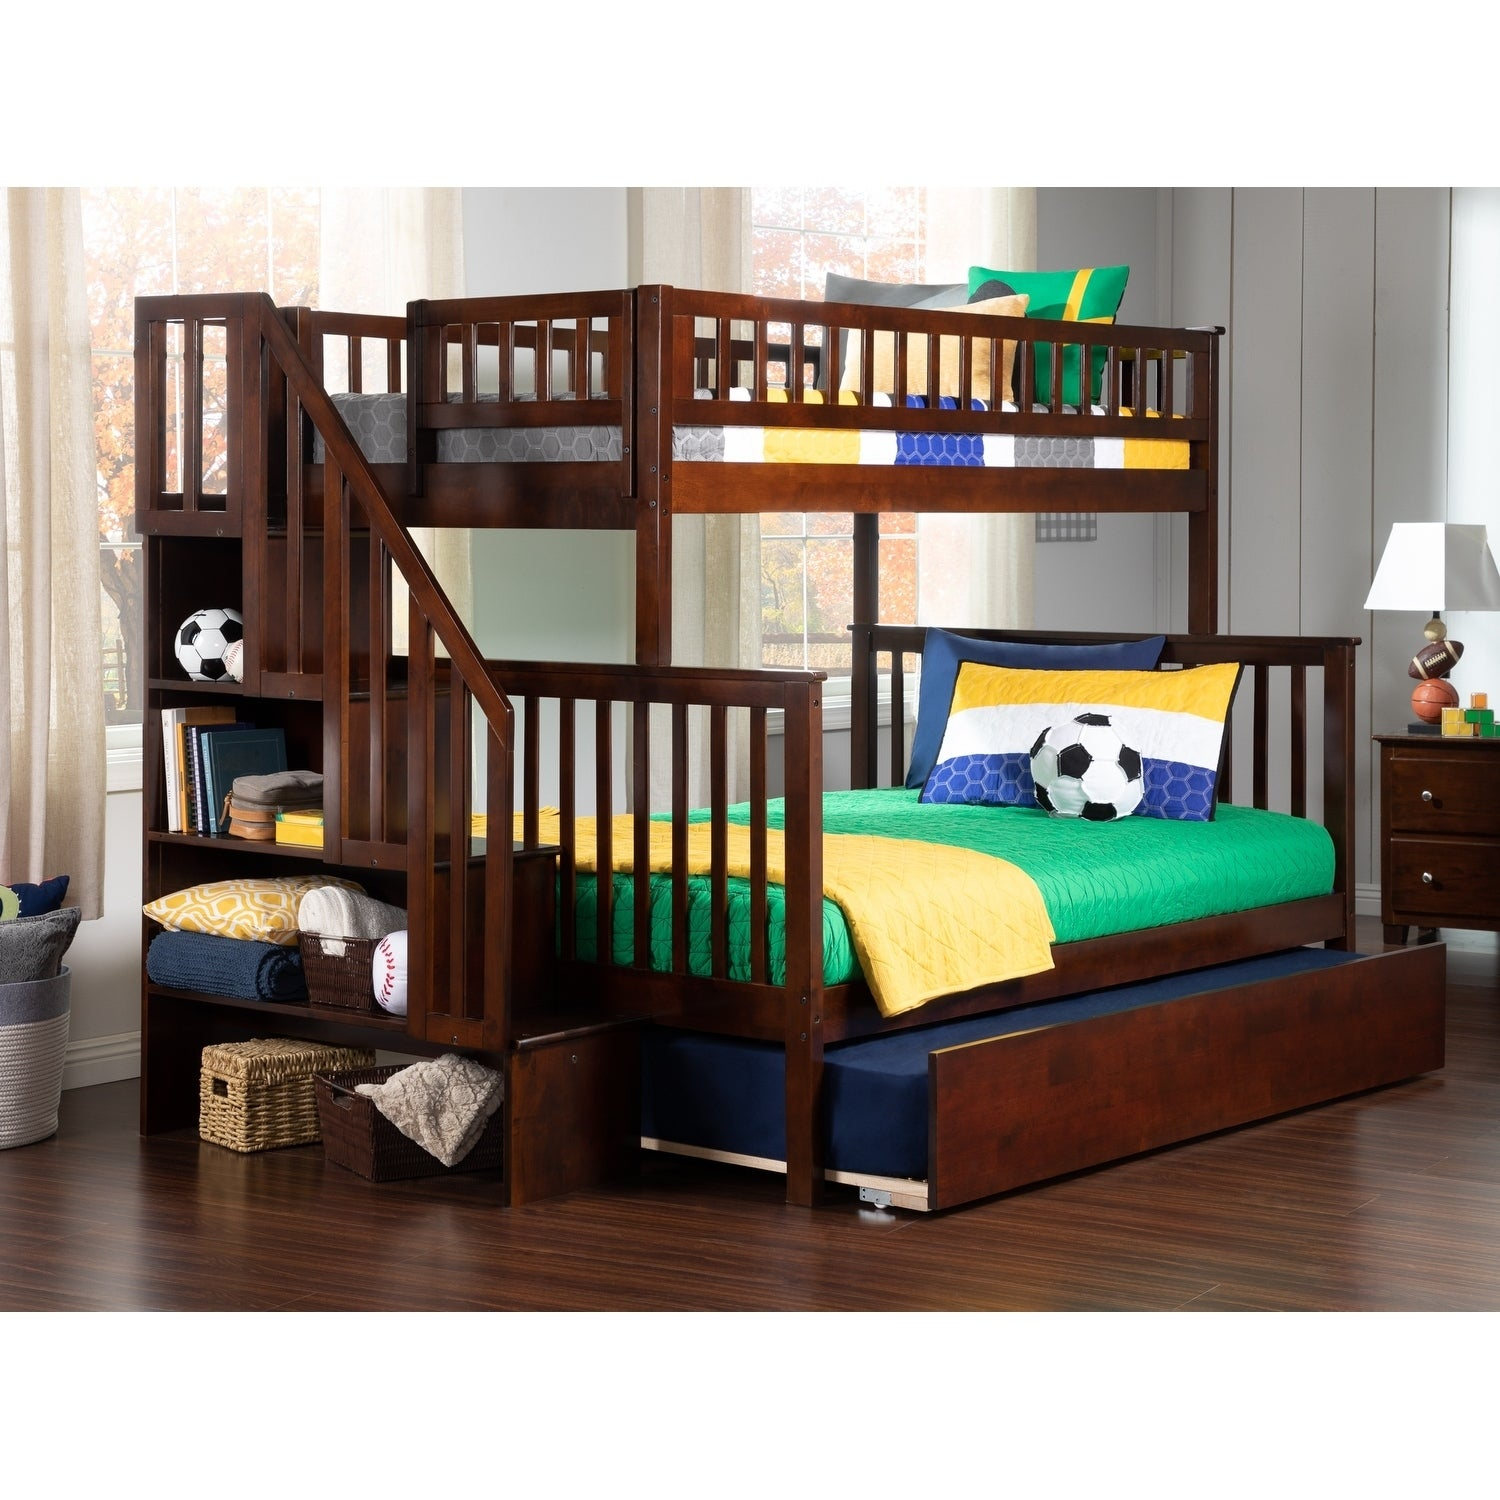 Atlantic Furniture Woodland Staircase Bunk Bed Twin over ...